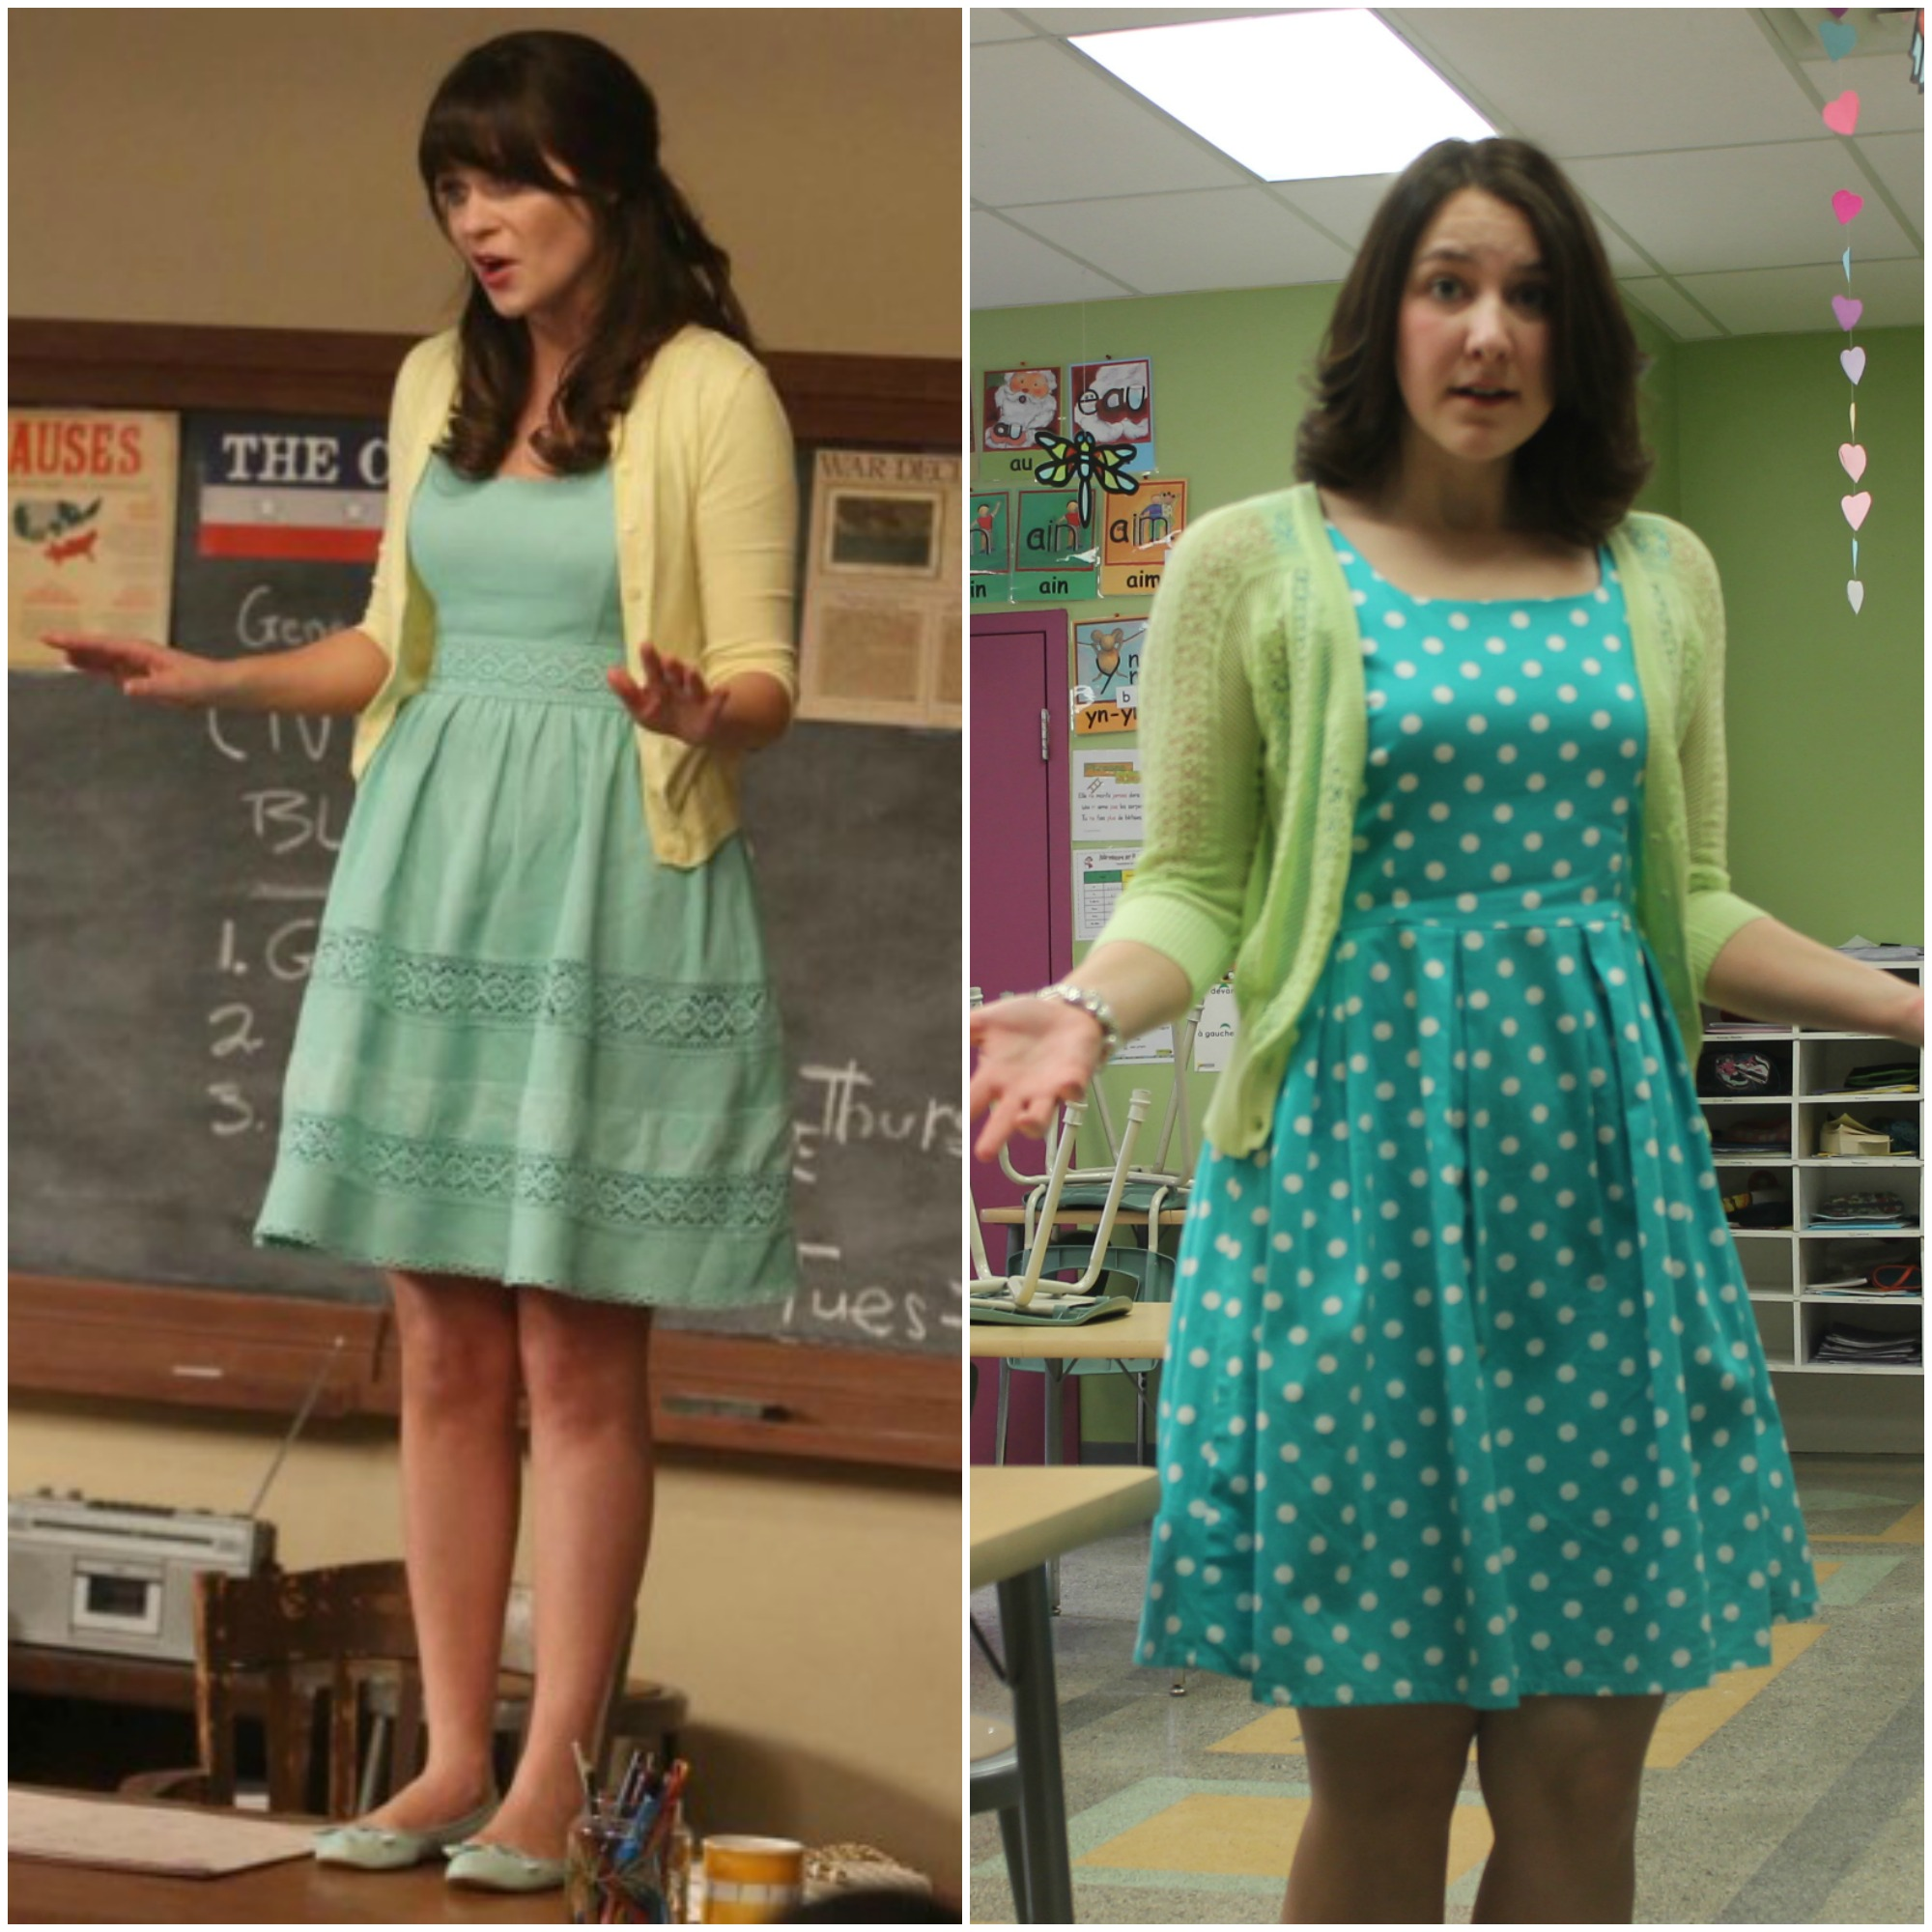 7. Jessica Day from The New Girl